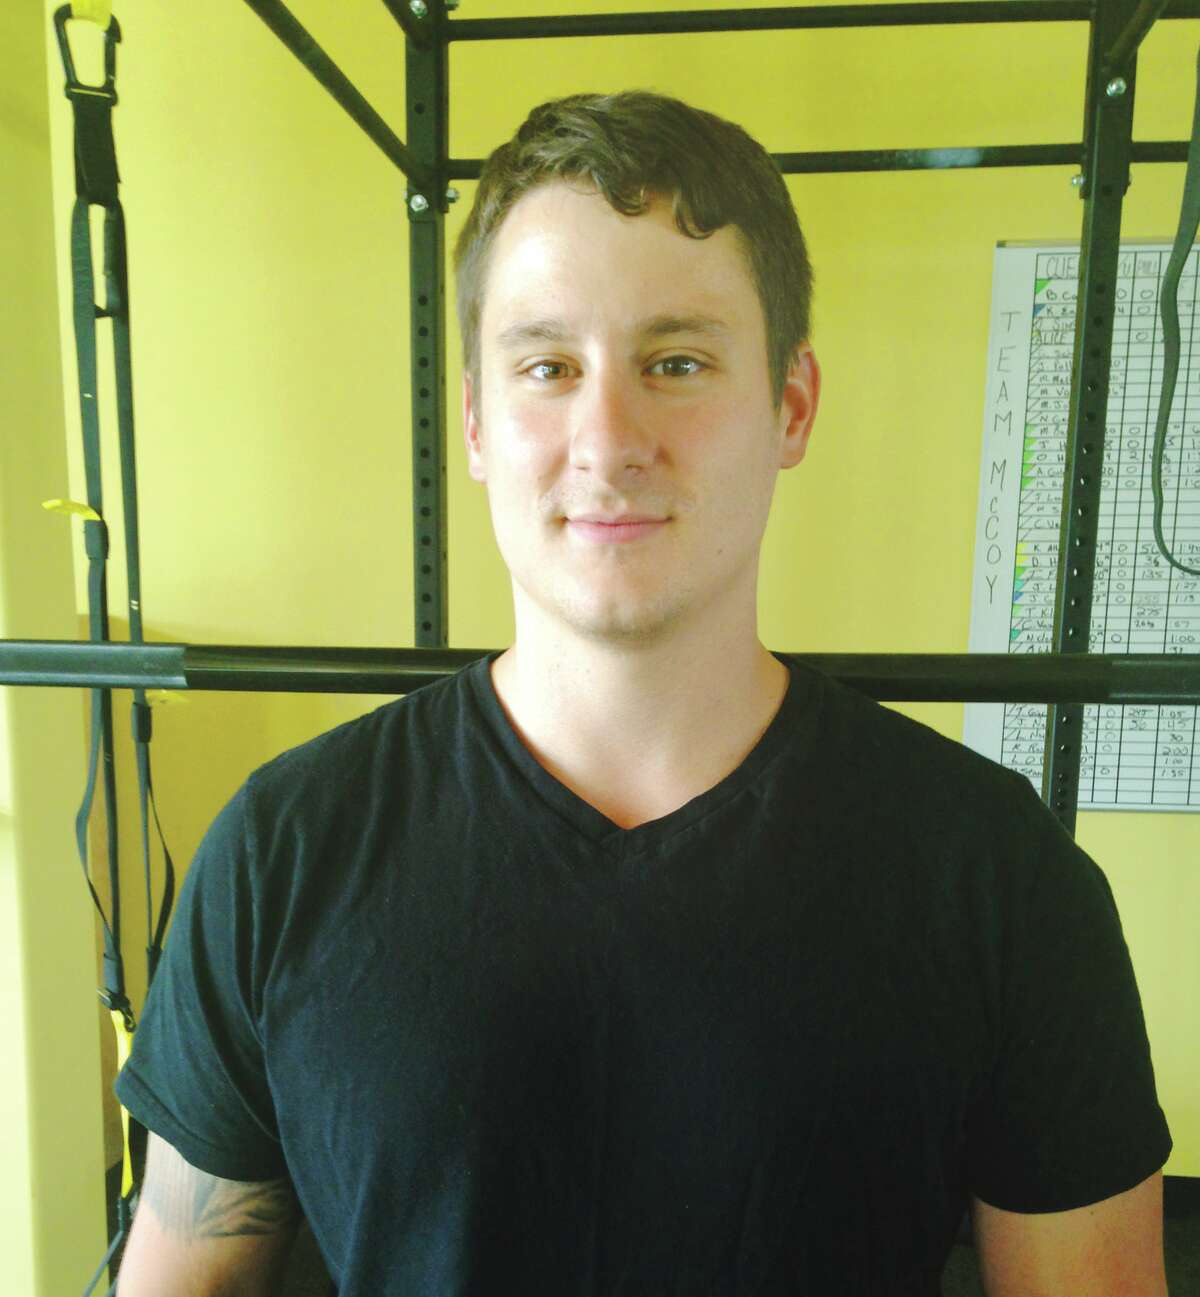 Anthony Demetriou, of Plaza Fitness Performance, is a Program Director with a Strongfirst Kettlebell Certification. Visit the website at plazafitness.net or contact him at ademetriou13@gmail.com or 1-845-313-8001. (Carin Lane / Times Union)